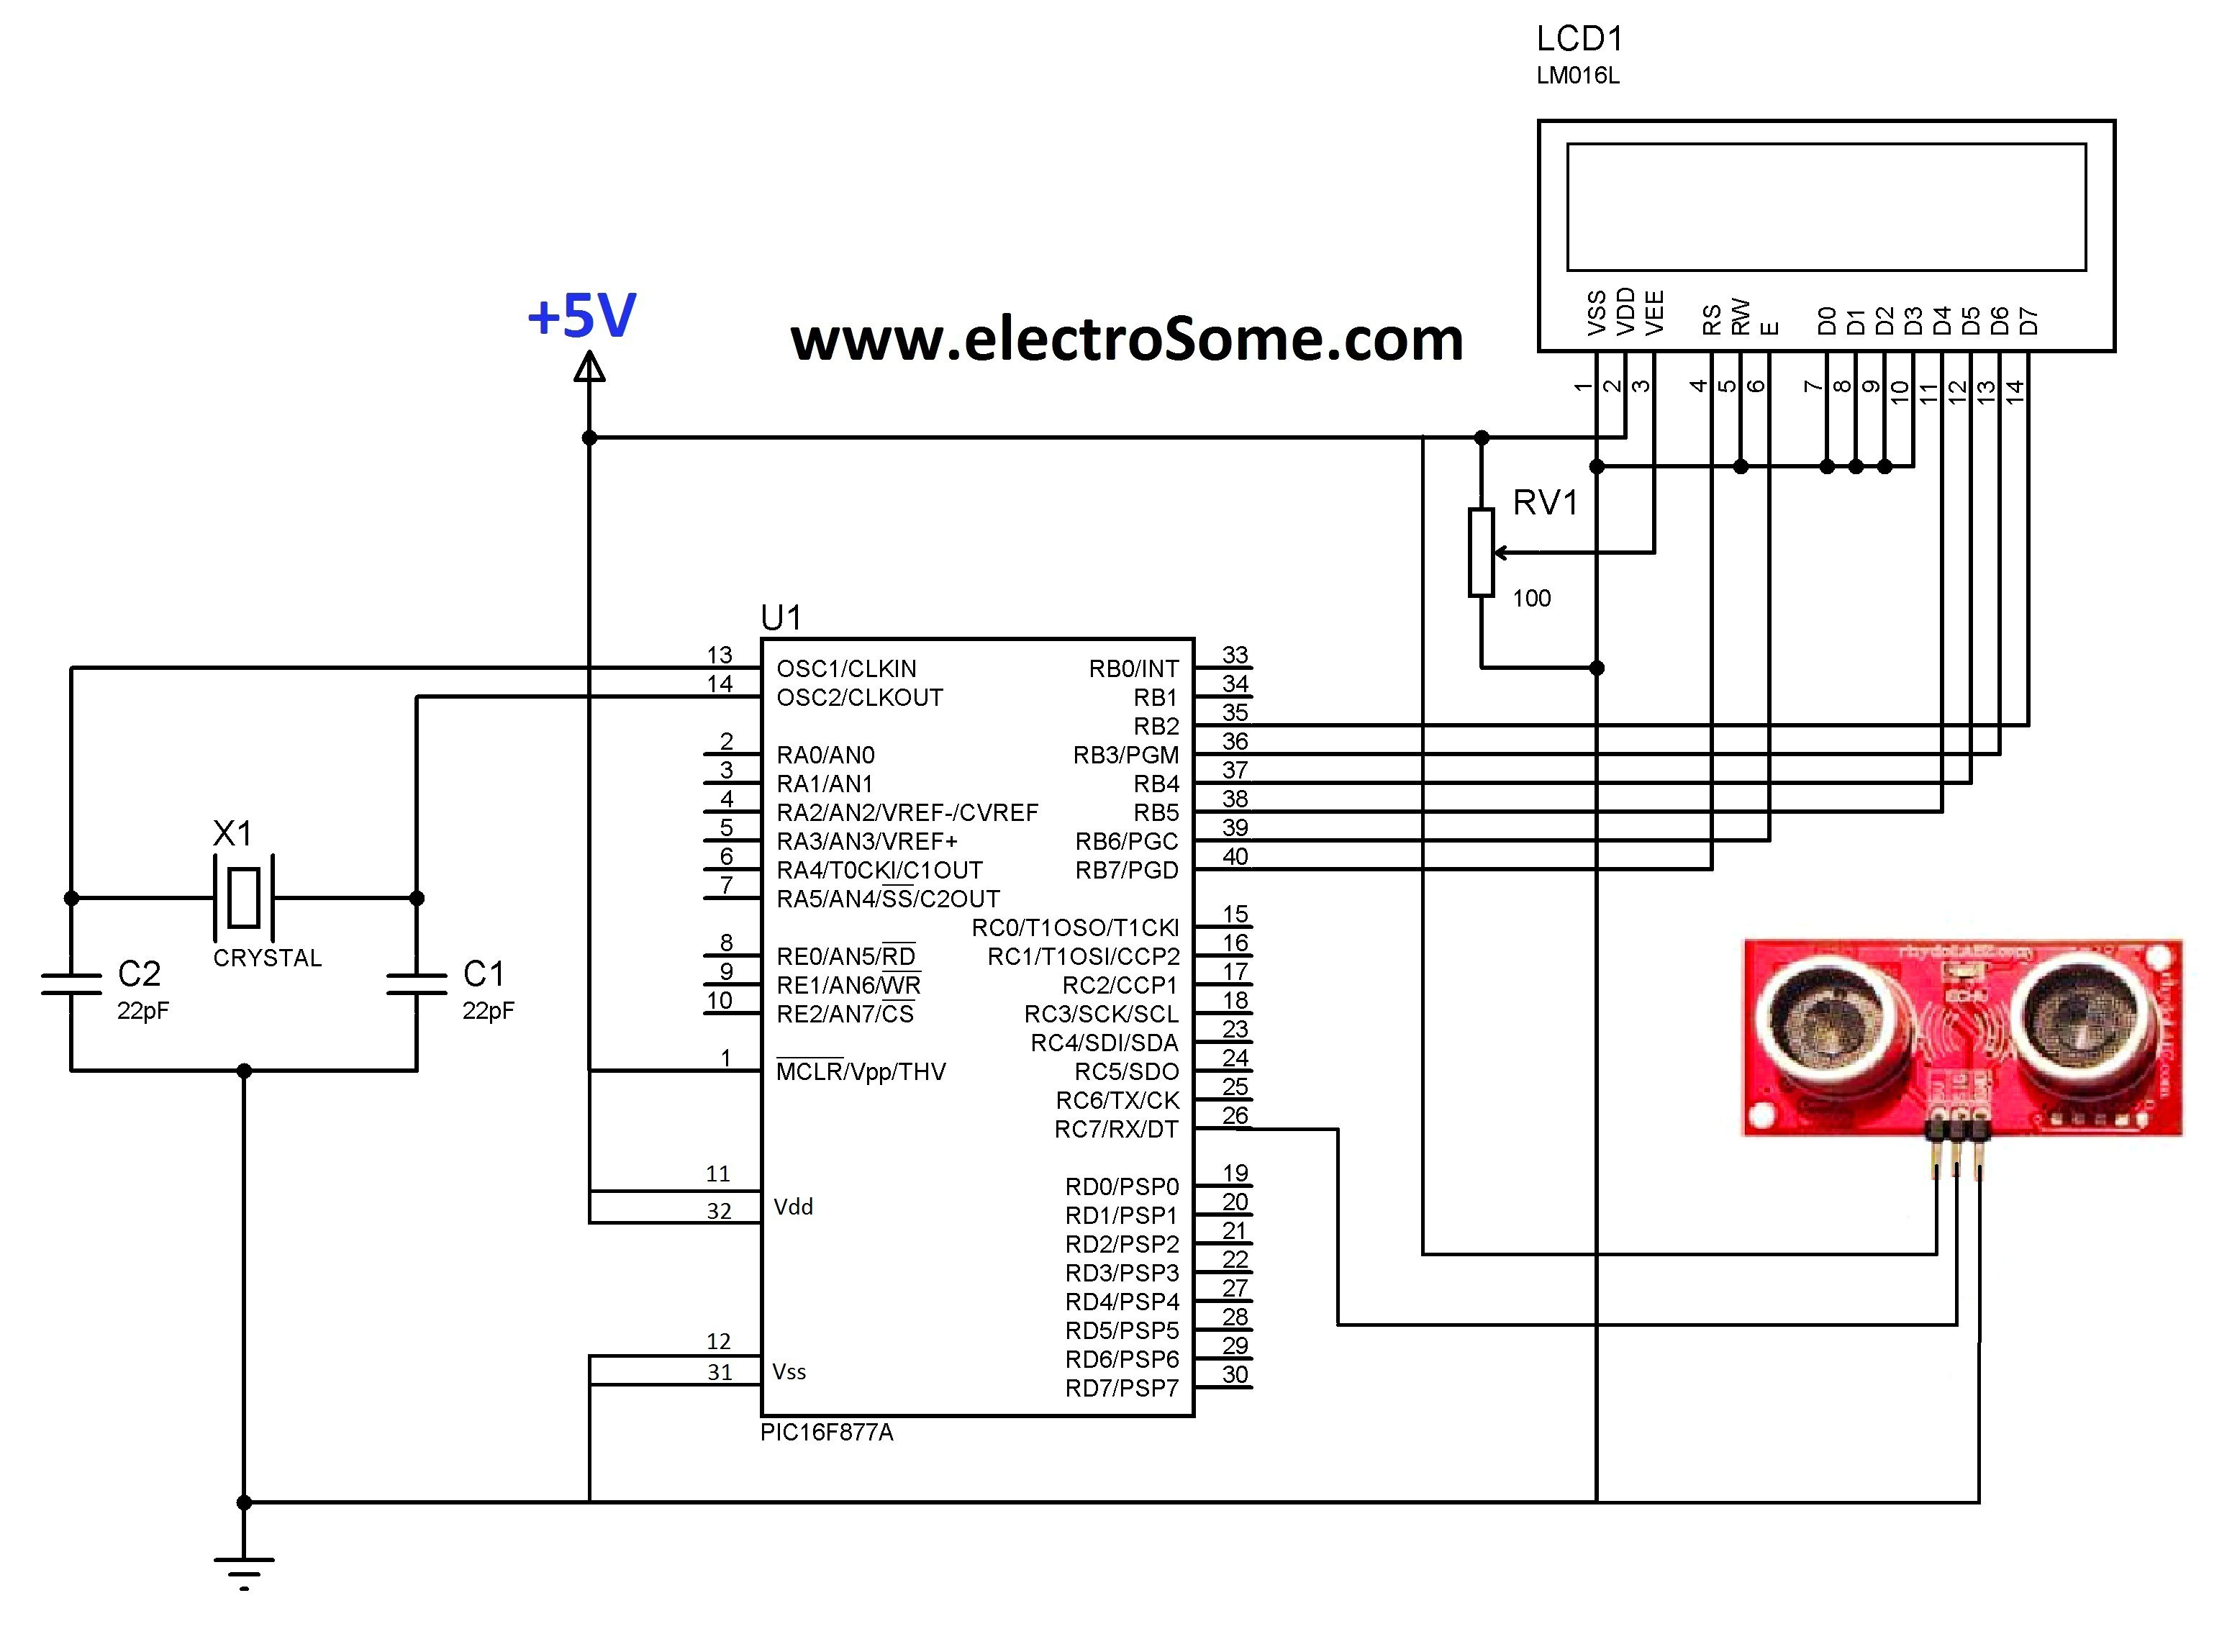 Tork Wiring Schematic for Lighting Contactor and Photocell F62dca3 tork Lighting Contactor Wiring Diagram Of Tork Wiring Schematic for Lighting Contactor and Photocell